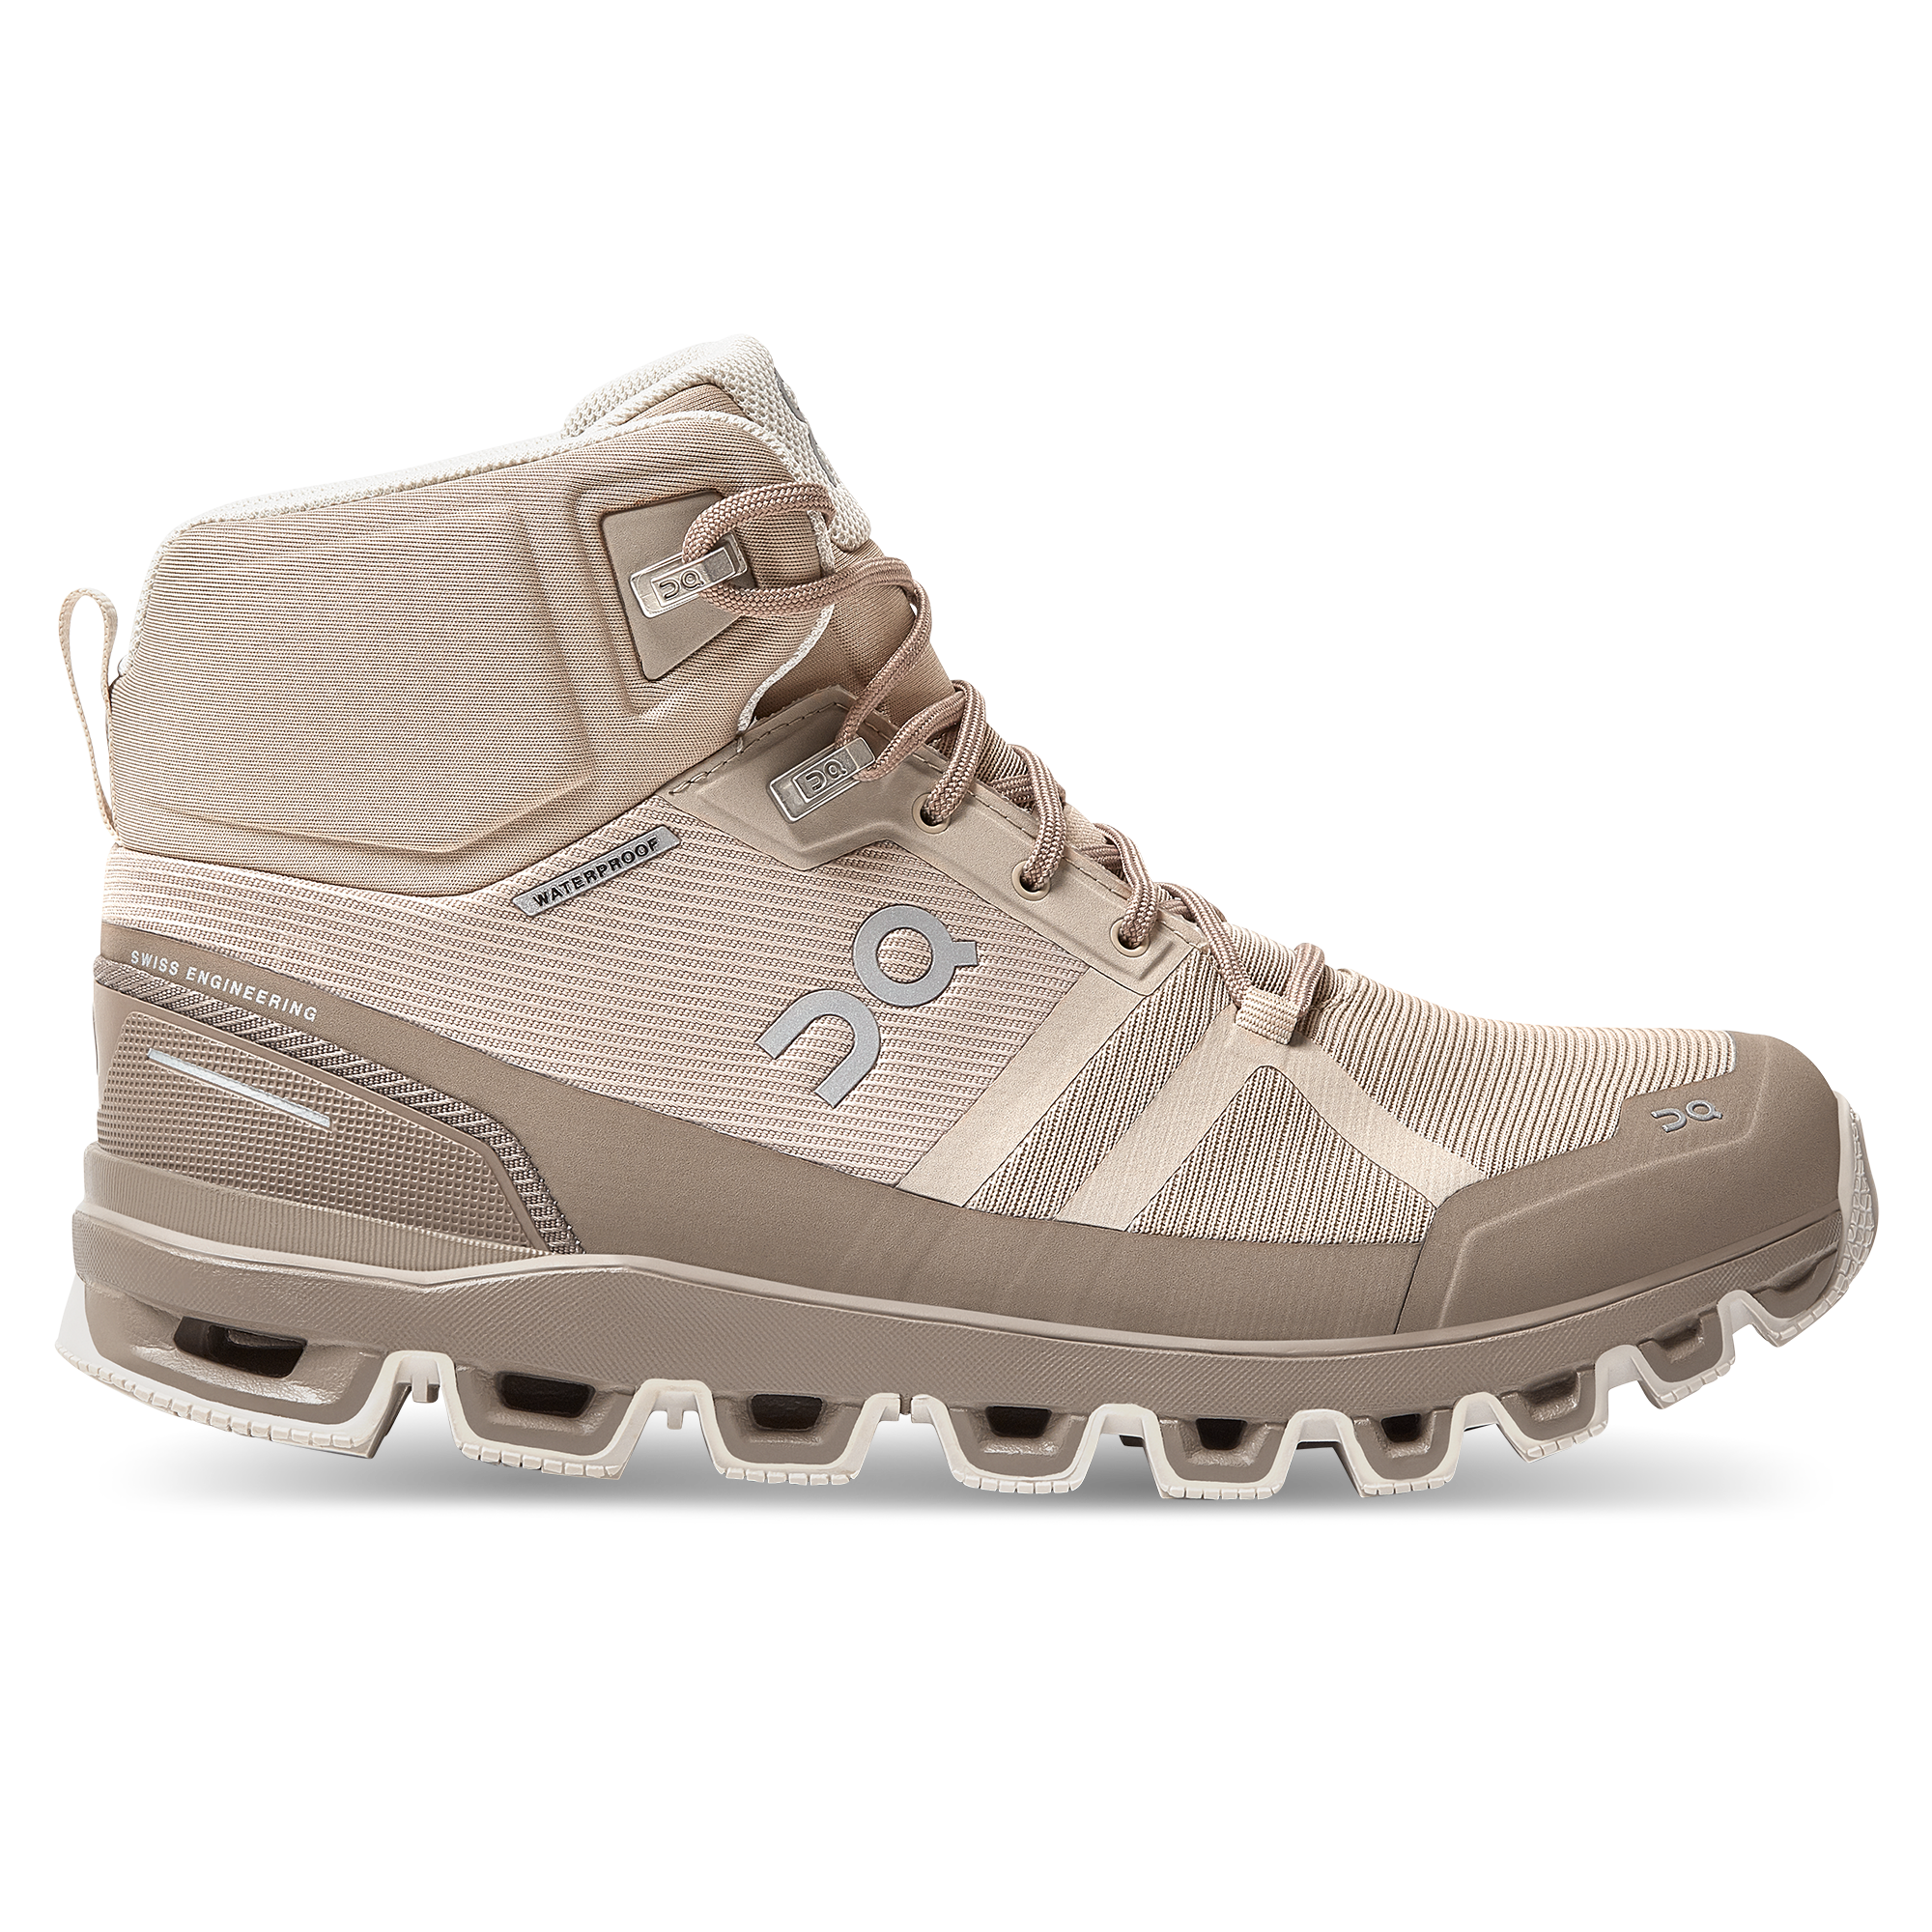 Cloudrock Waterproof The Lightweight Hiking Boot On